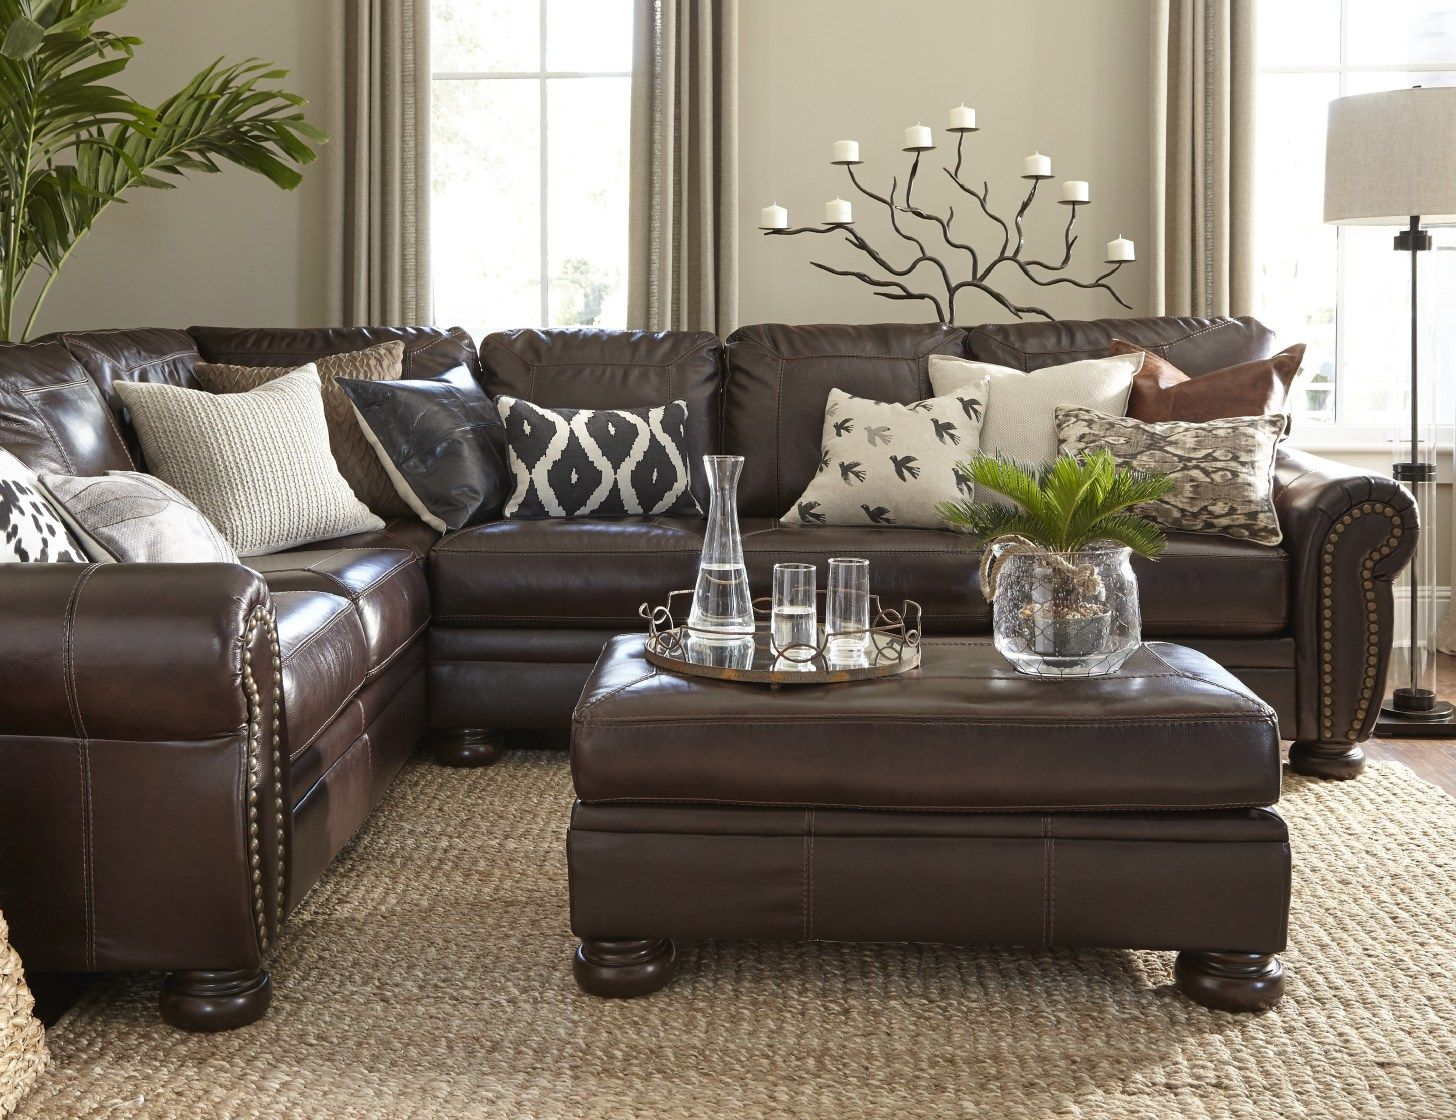 Best Dark Brown Leather Couch Ideas And Pictures 33 Brown Couch Living Room Brown Living Room Decor Modern Leather Living Room Furniture